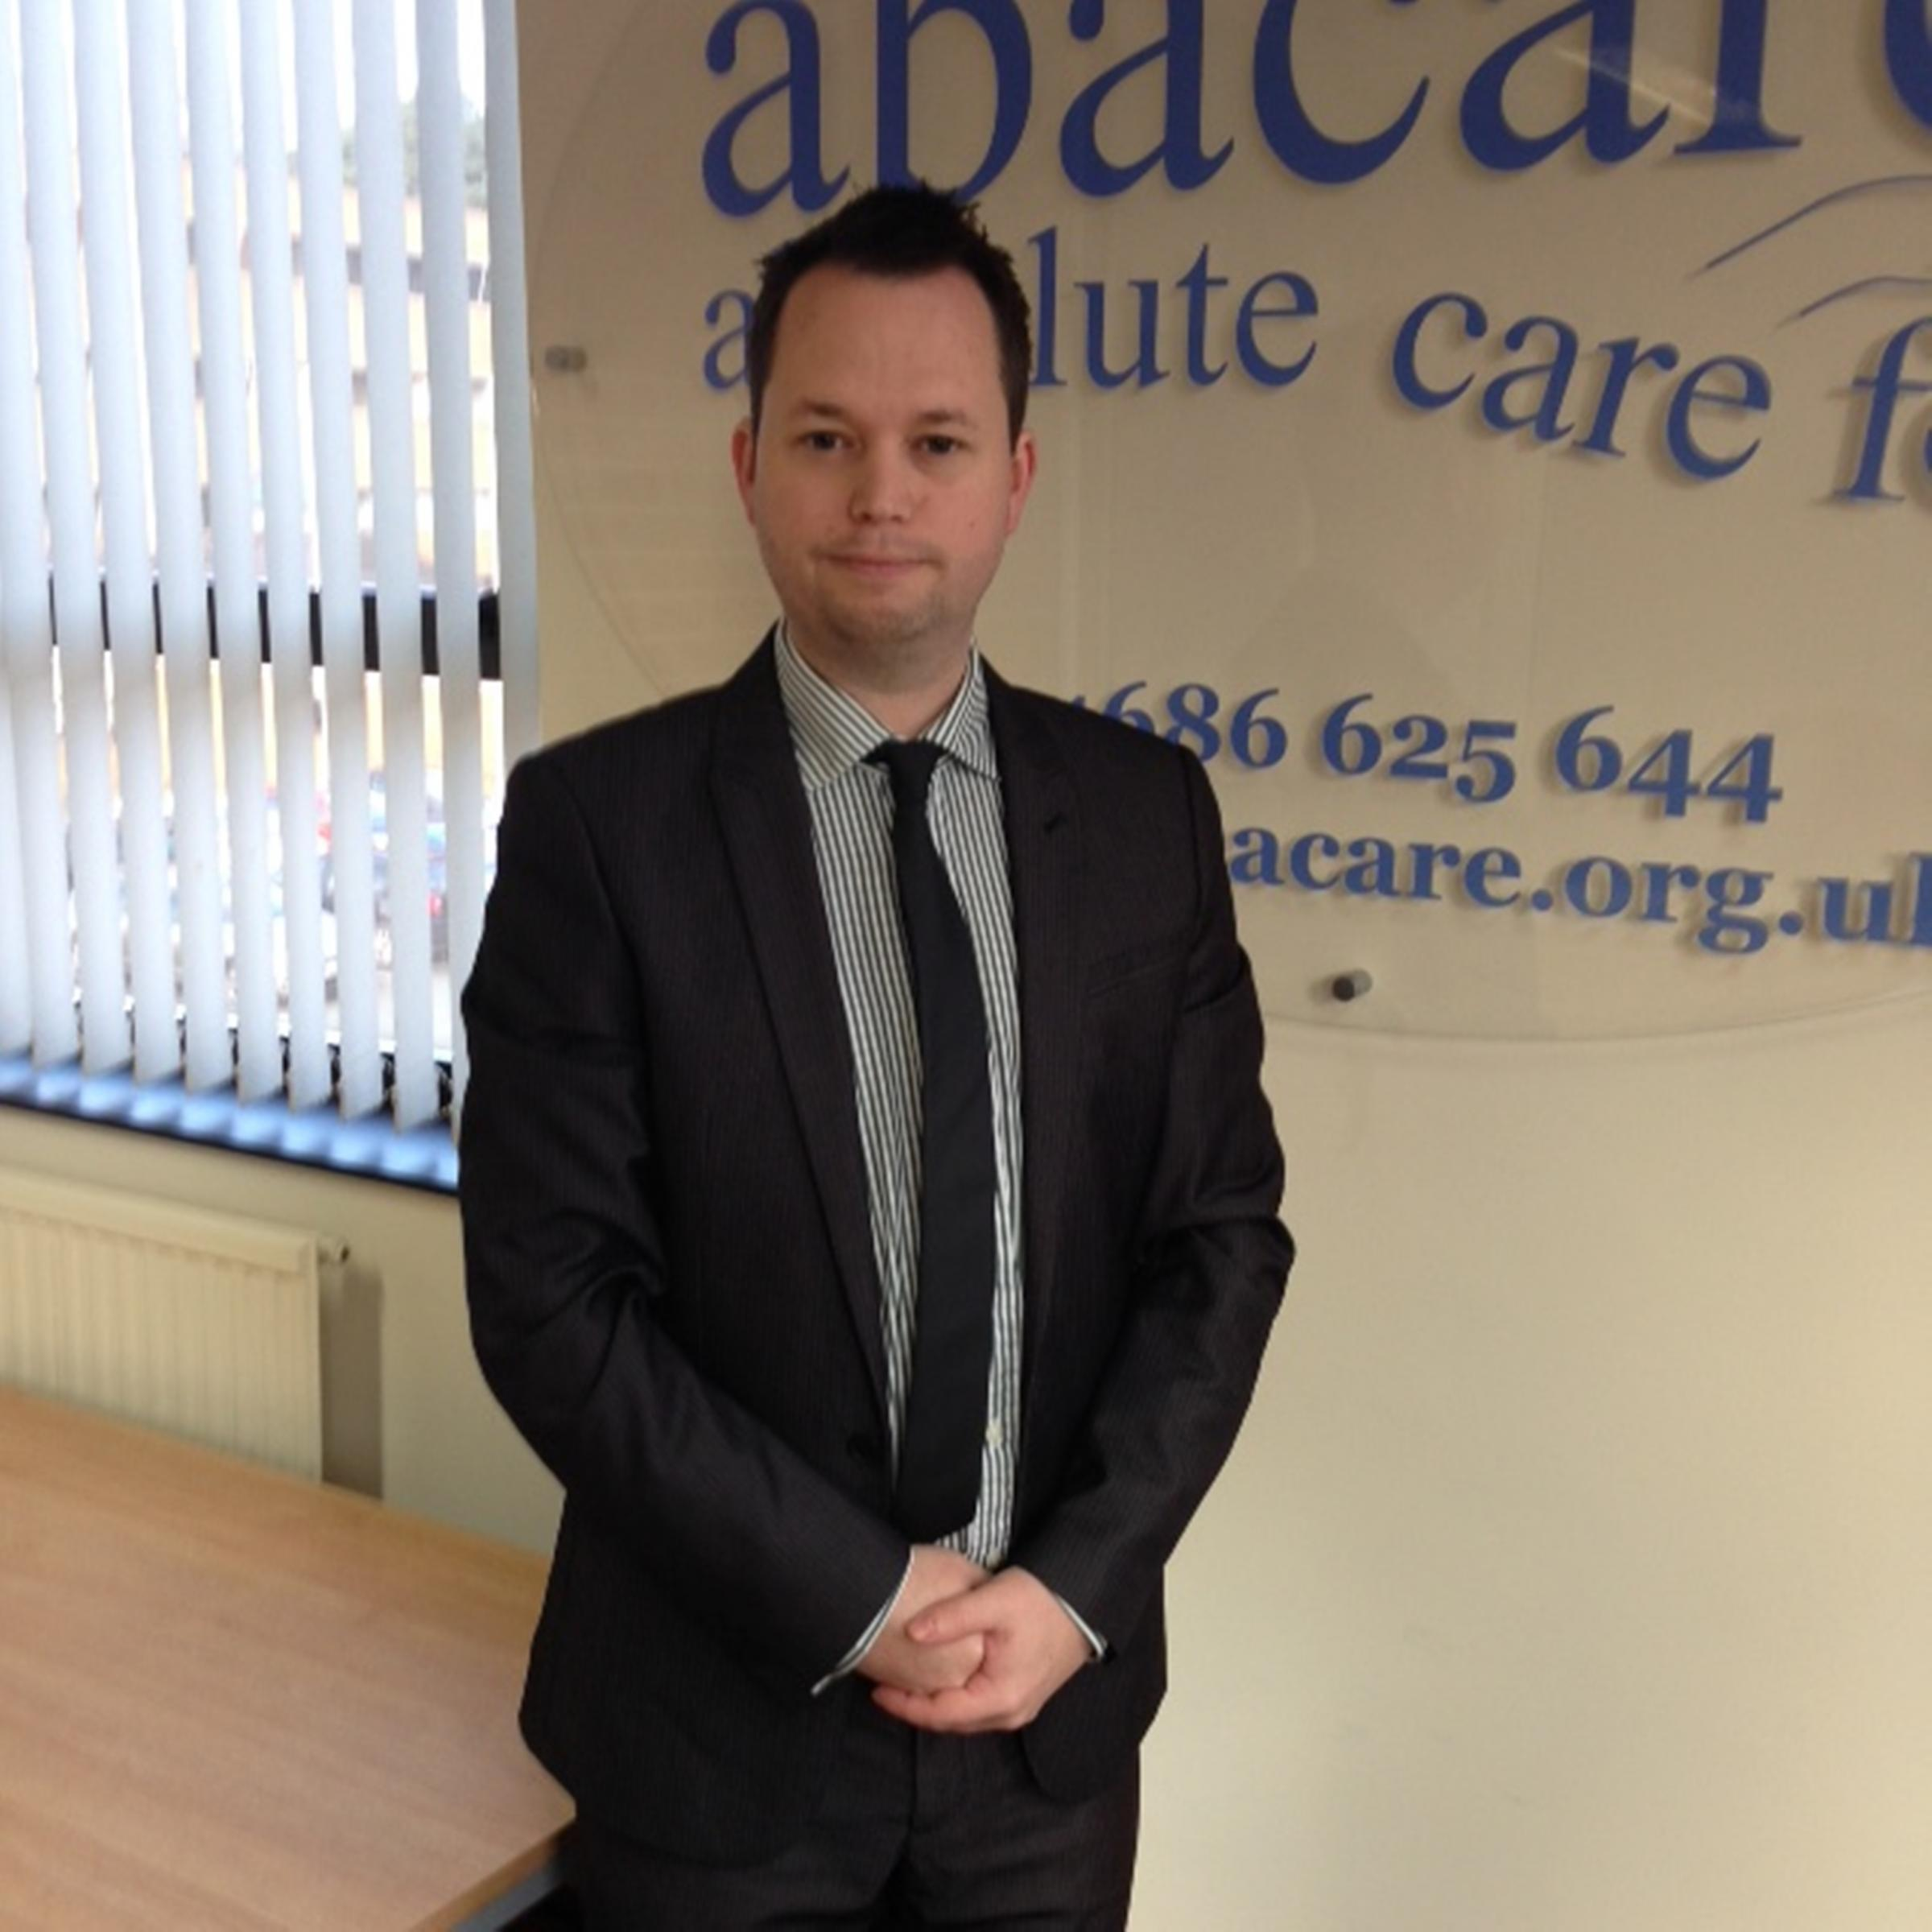 Sam Evans, Registered Manager at Abacare, which is hosting a Respite Care Awareness Week.